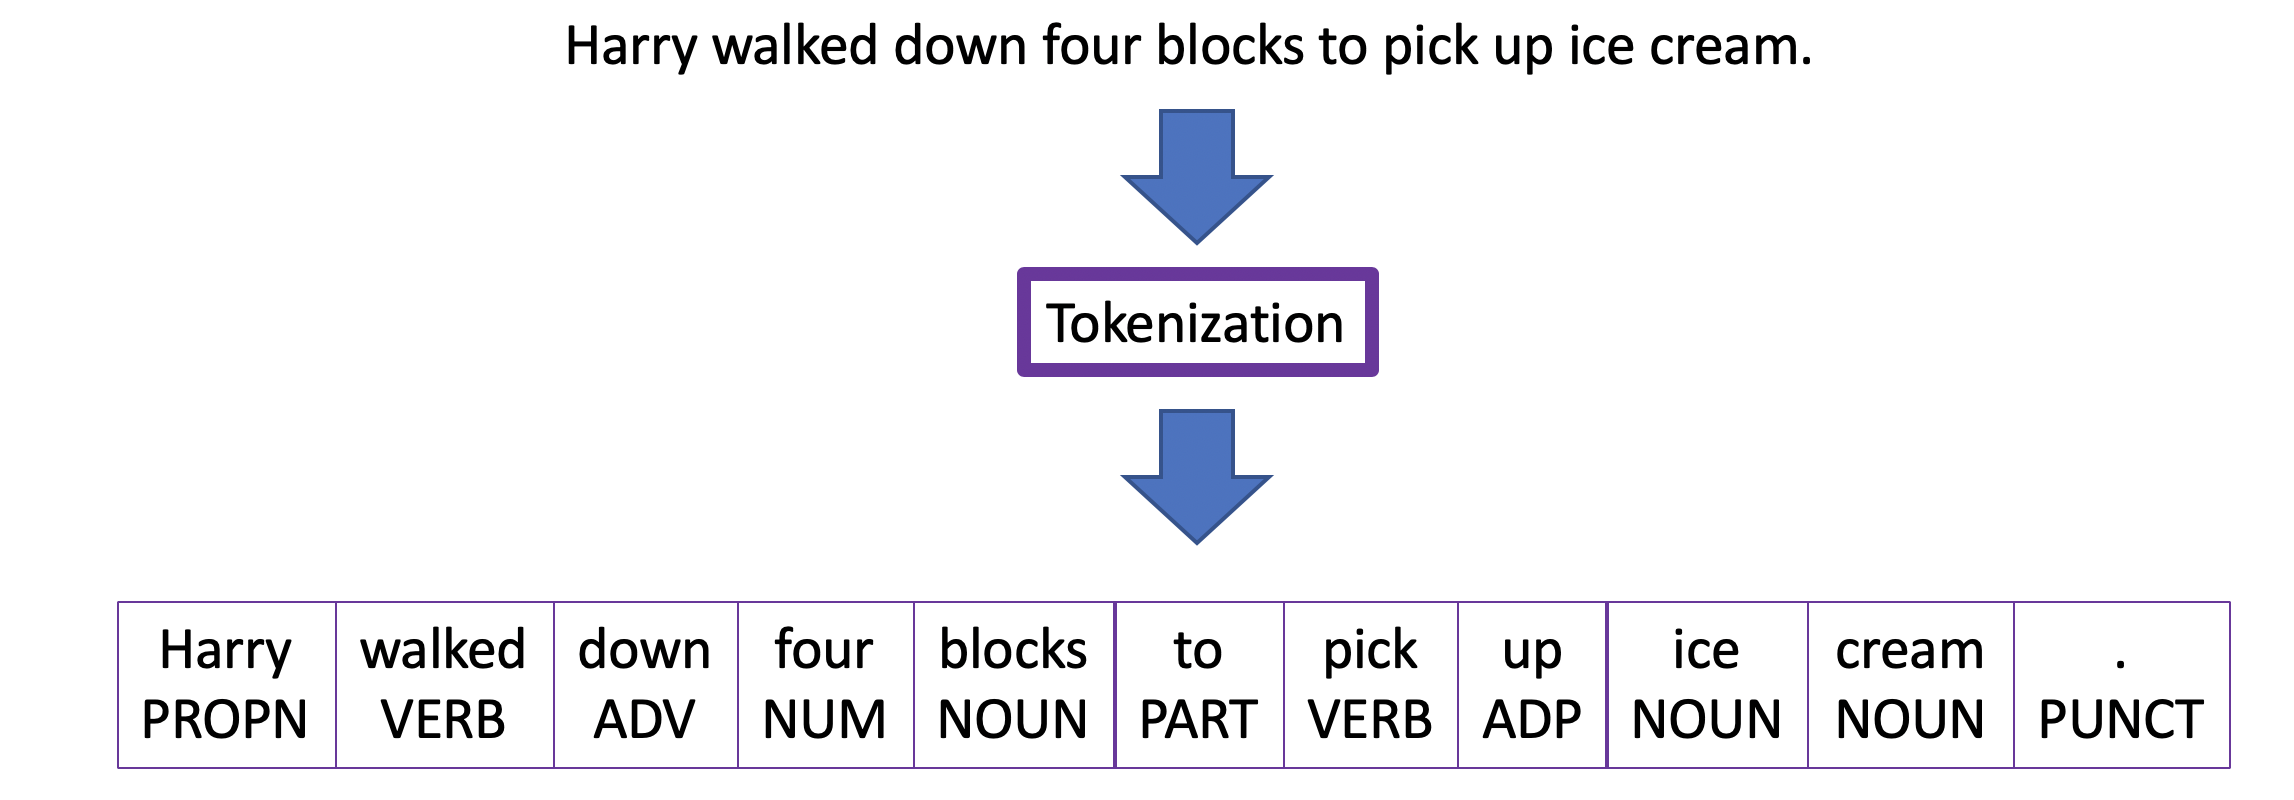 Tokenization example